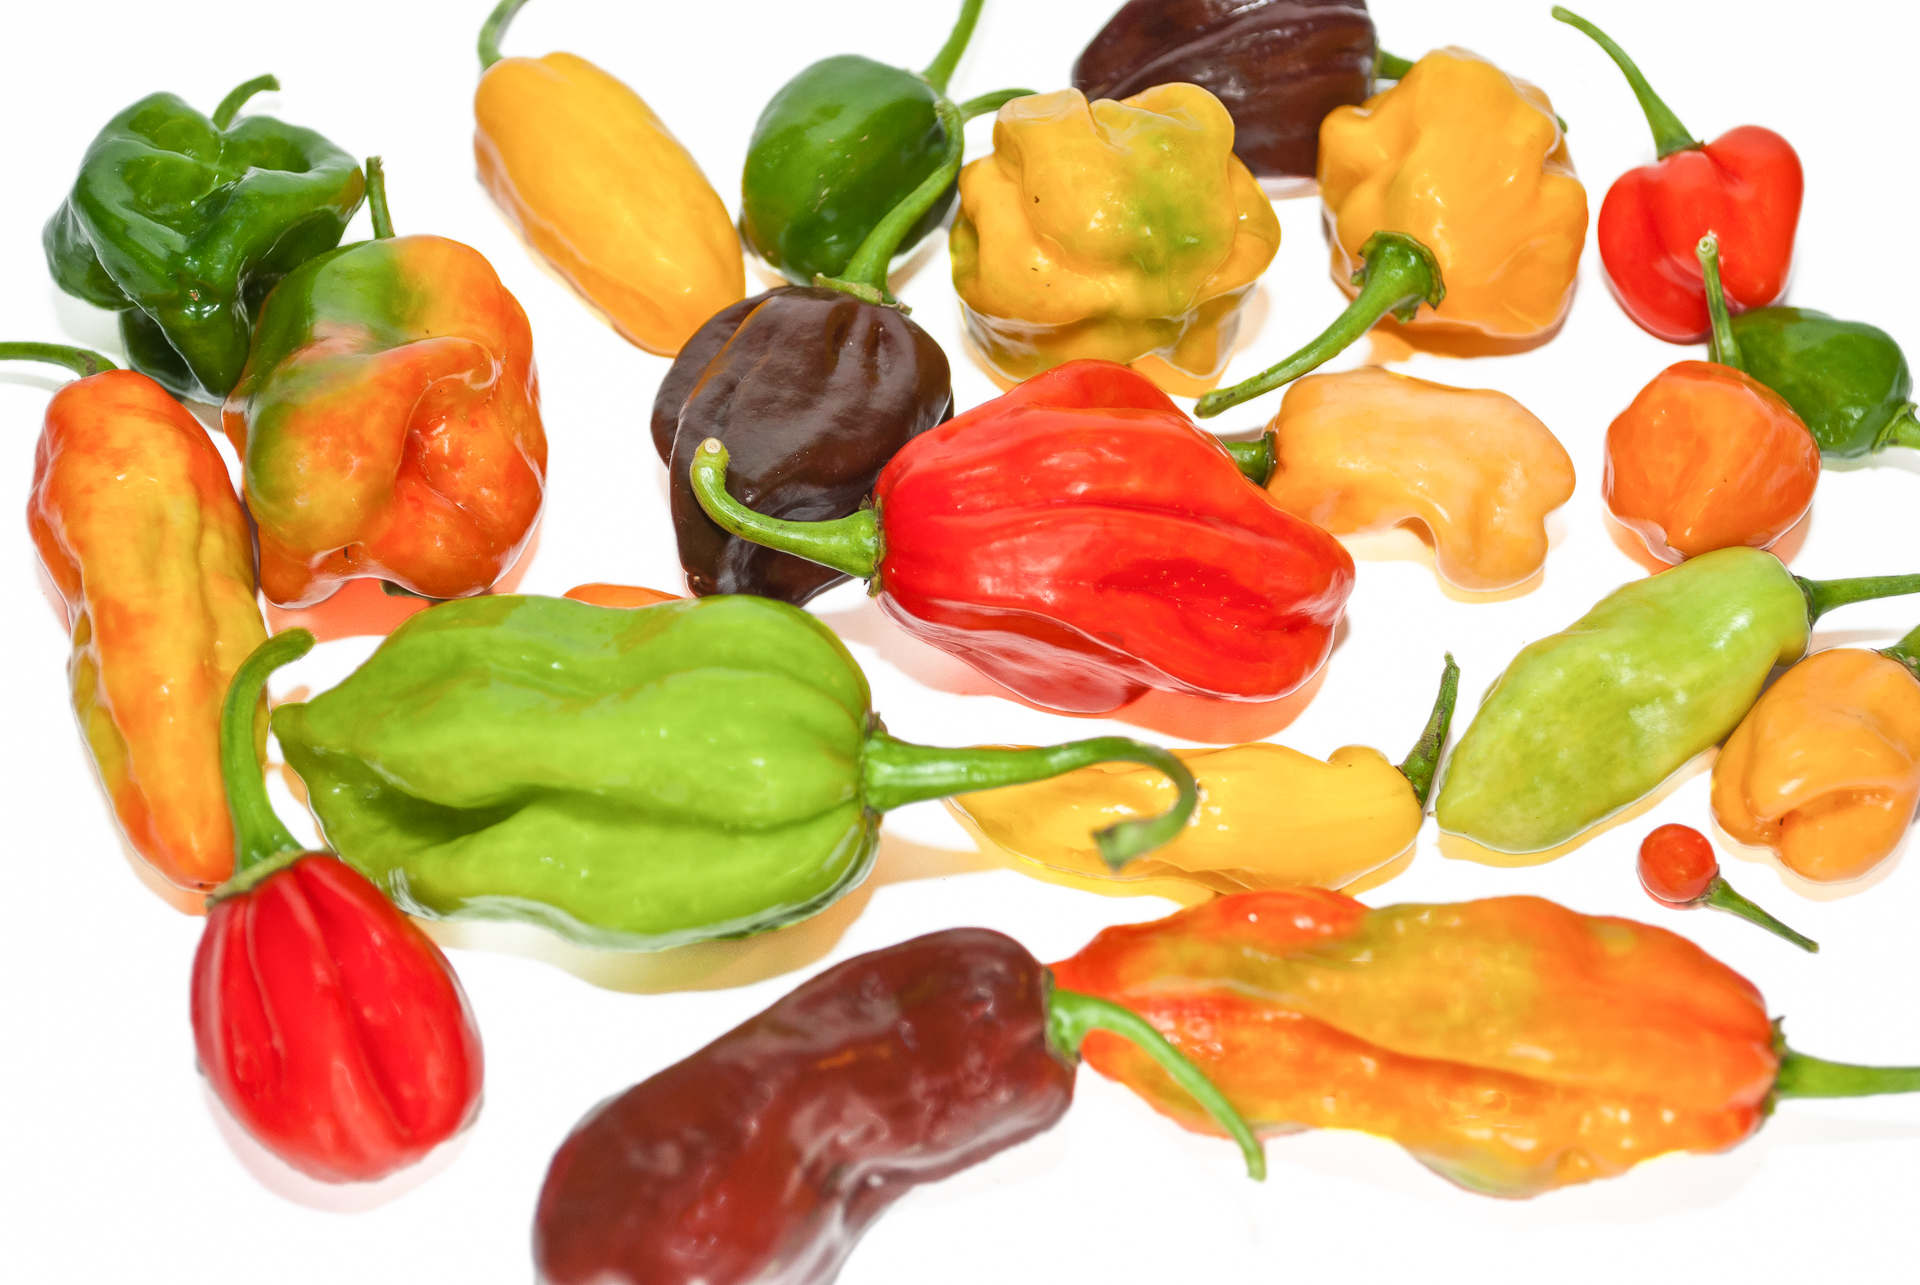 CGN21570 - Capsicum frutescens - Chilisorte